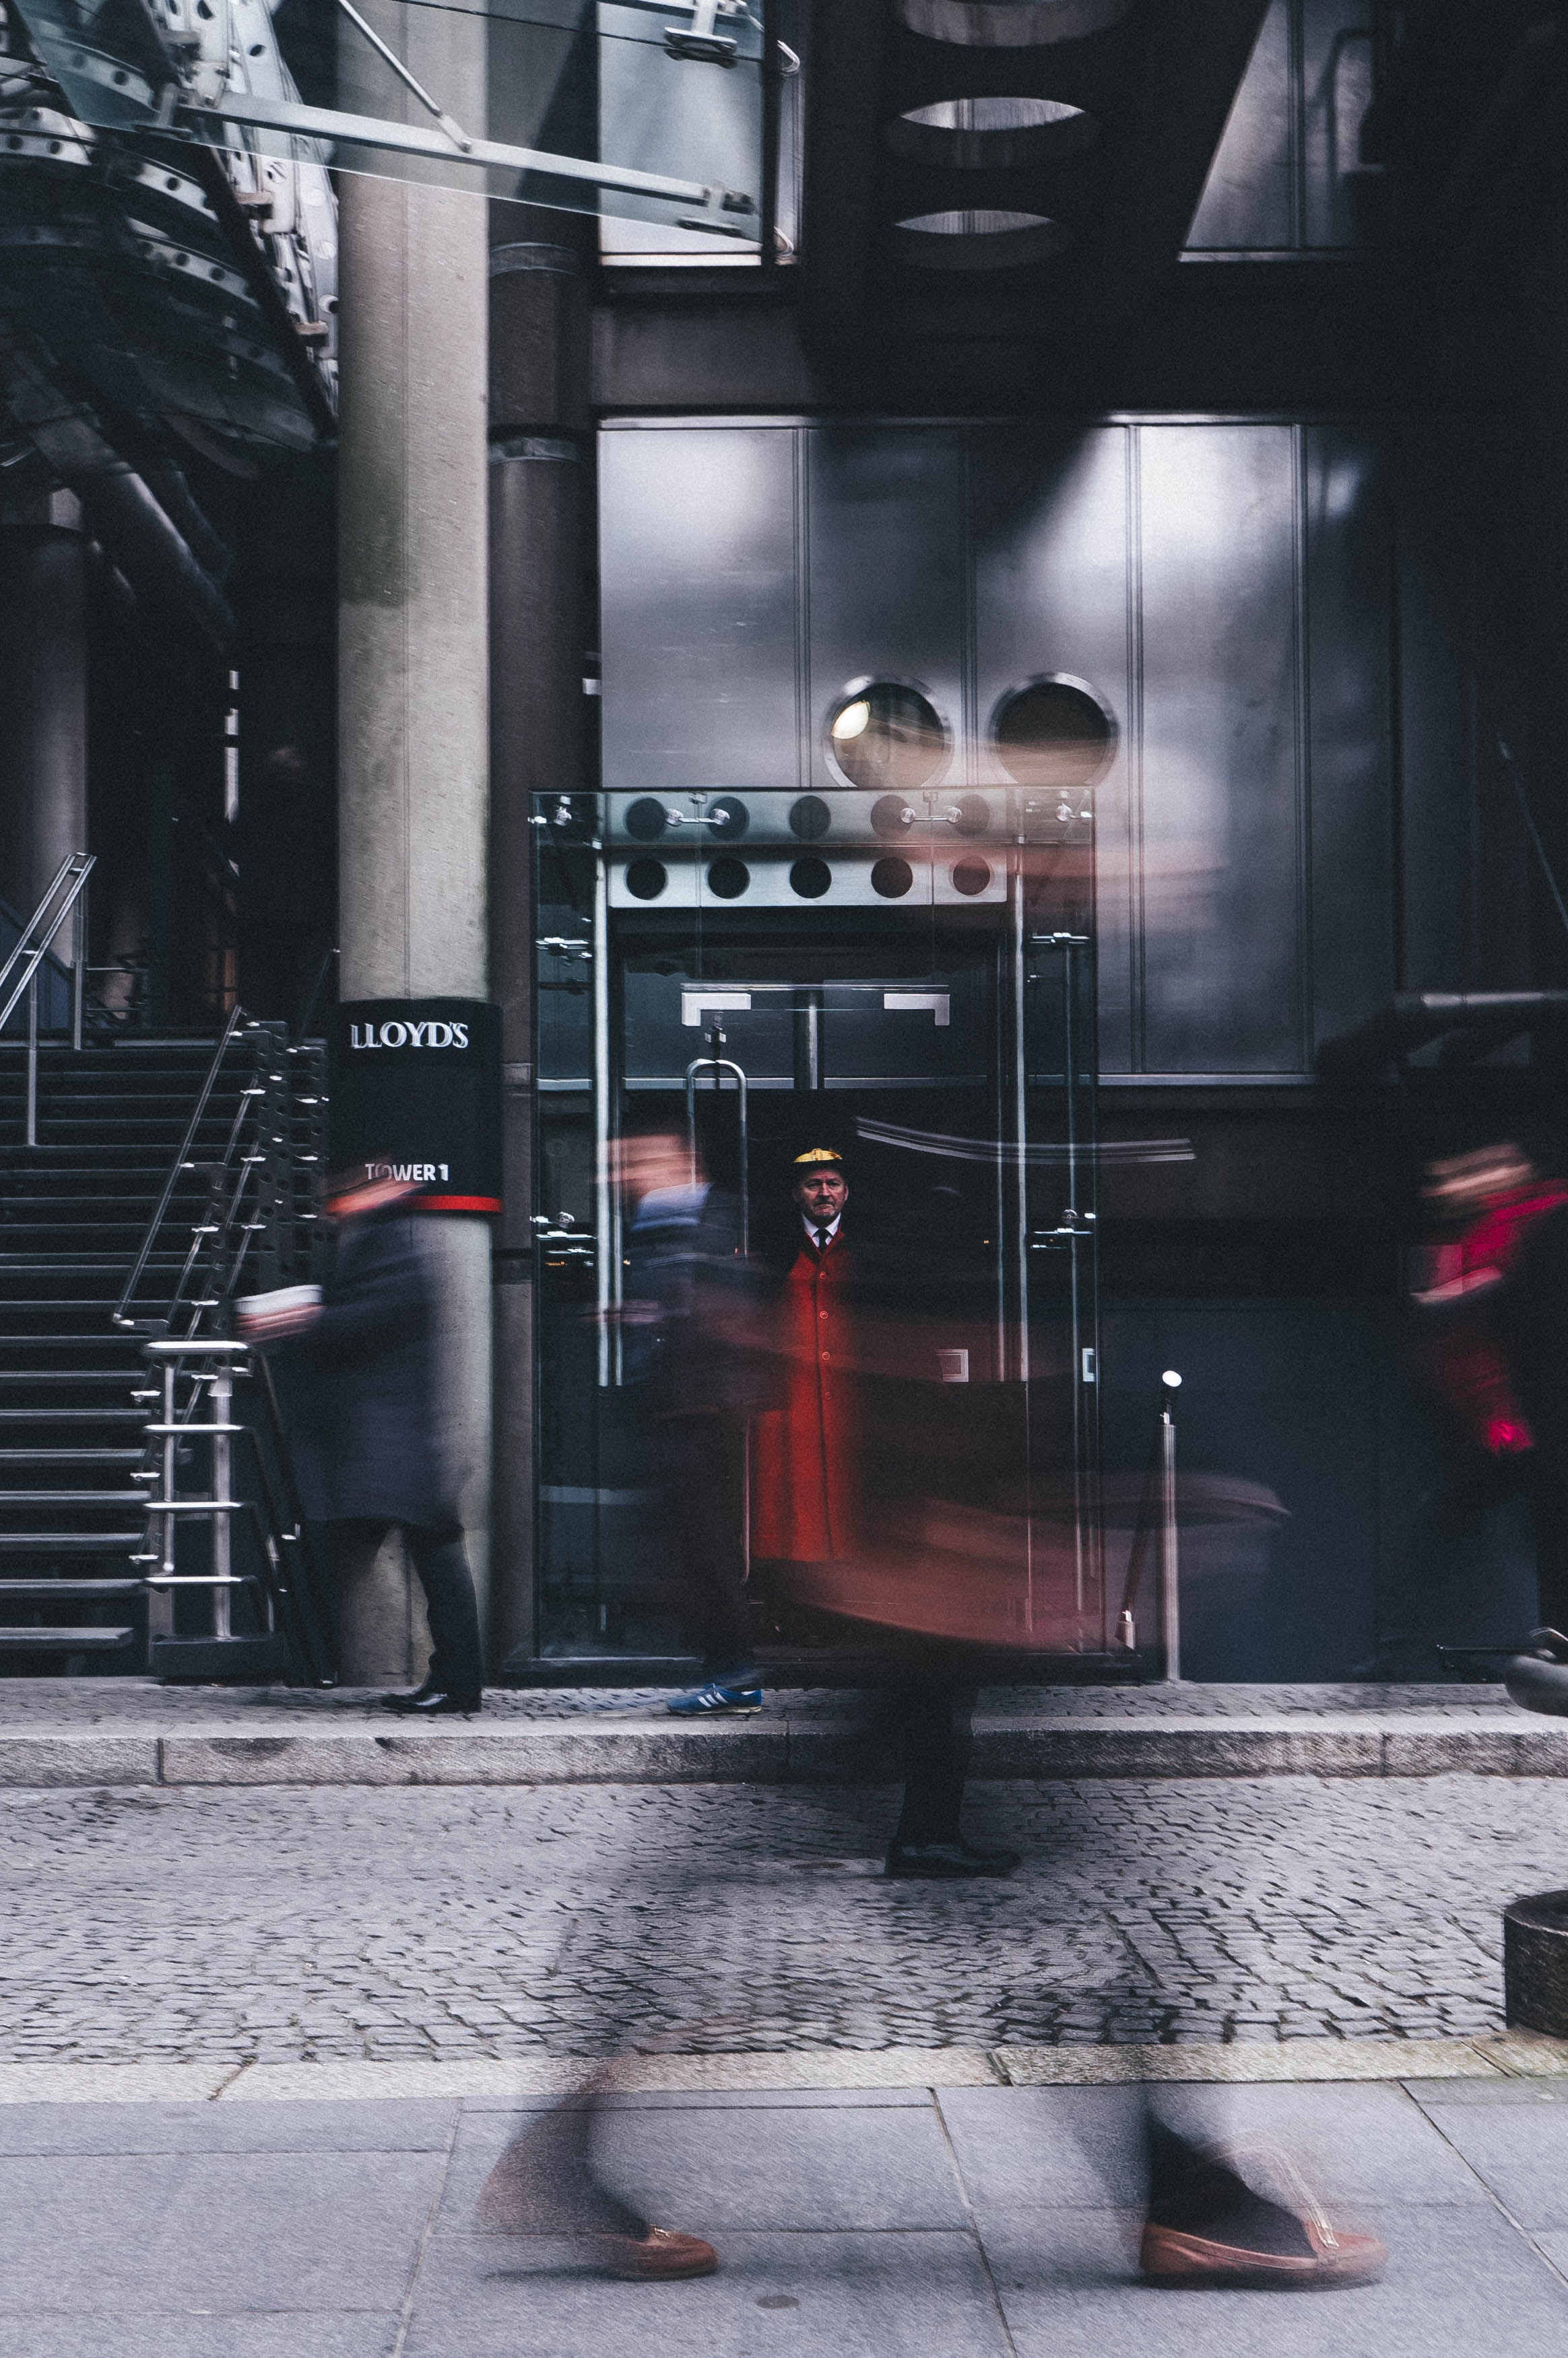 A doorman watching people pass by on Leadenhall Street